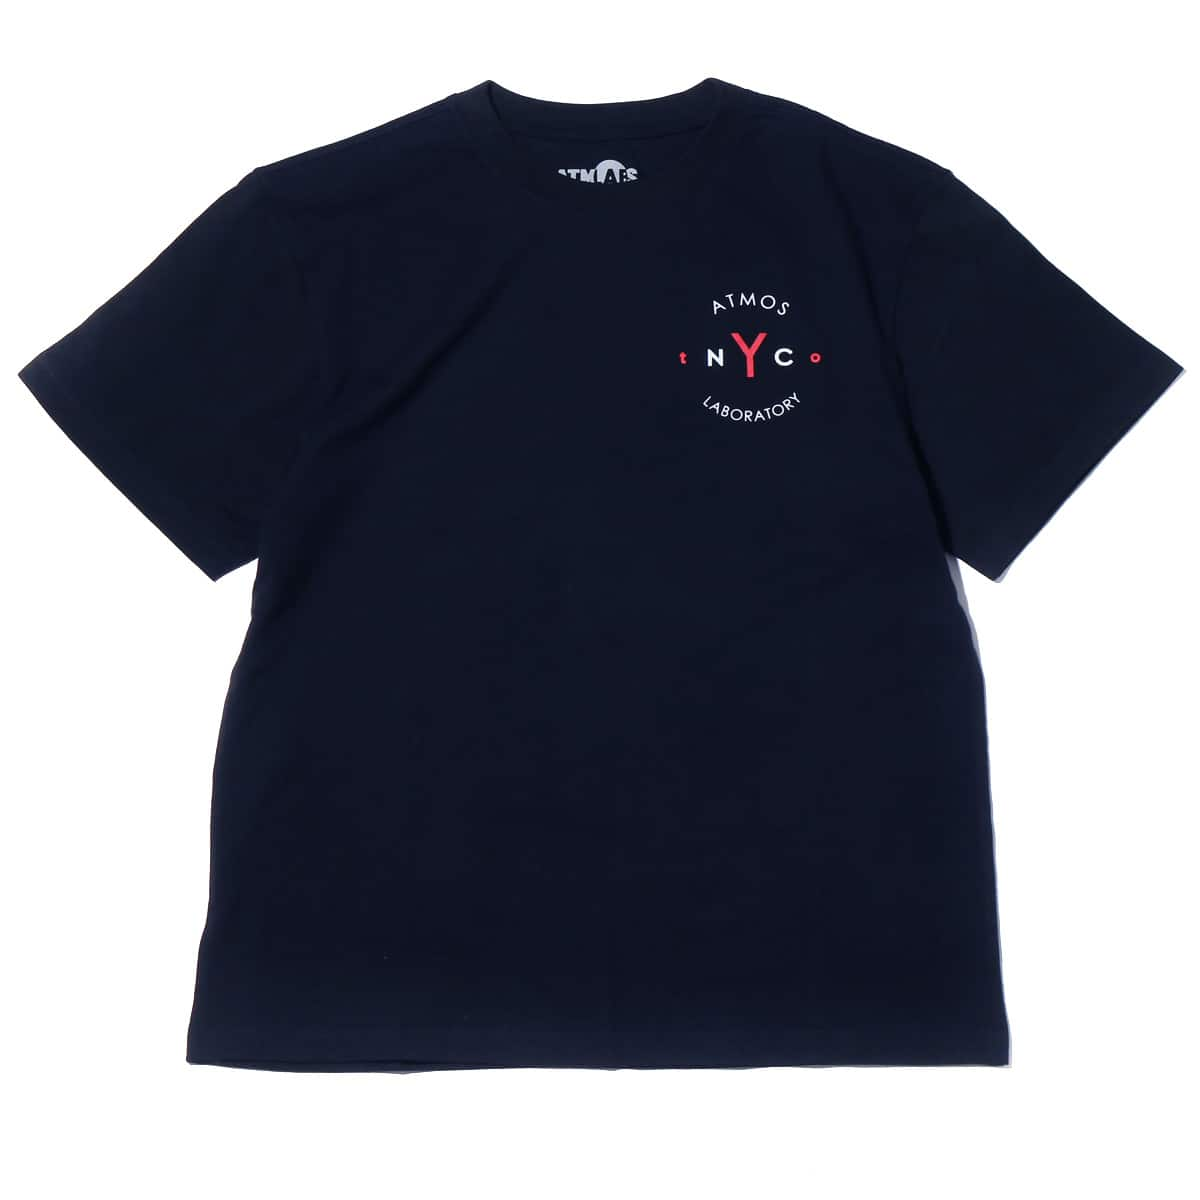 ATMOS LAB tNYCo TEE  NAVY_photo_large